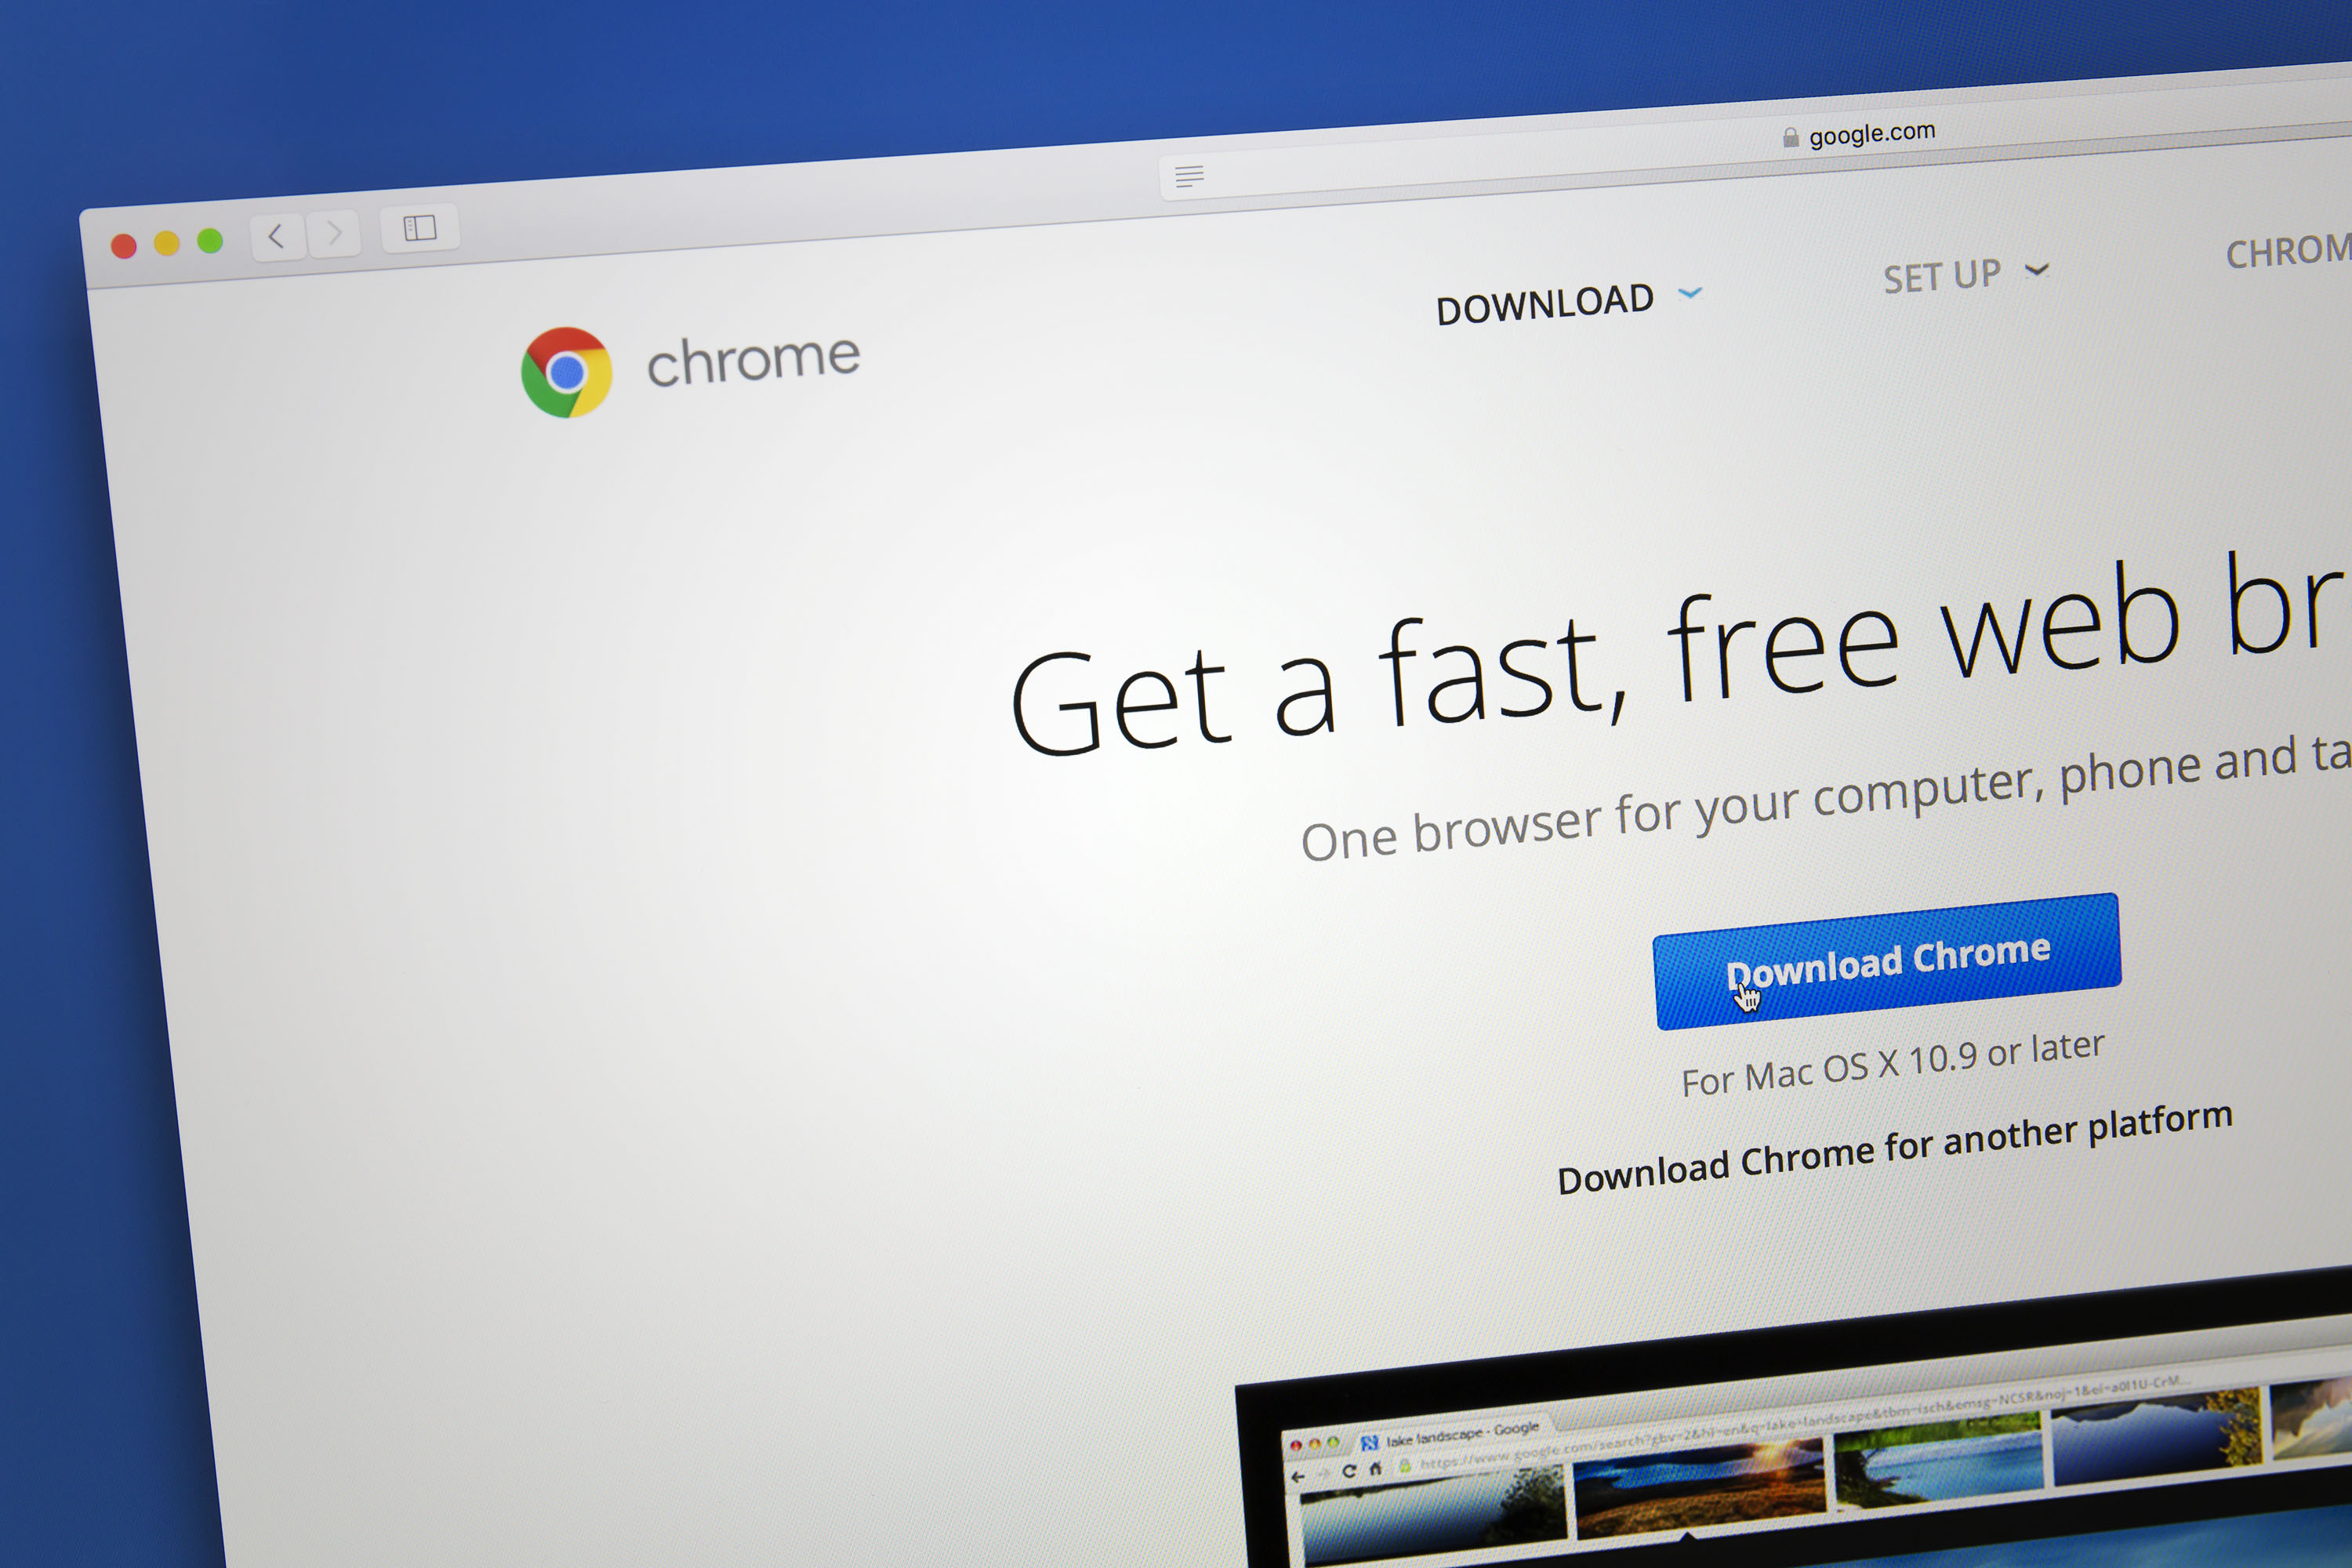 Chrome pour Windows on ARM est prêt mais Google se refuse à le publier